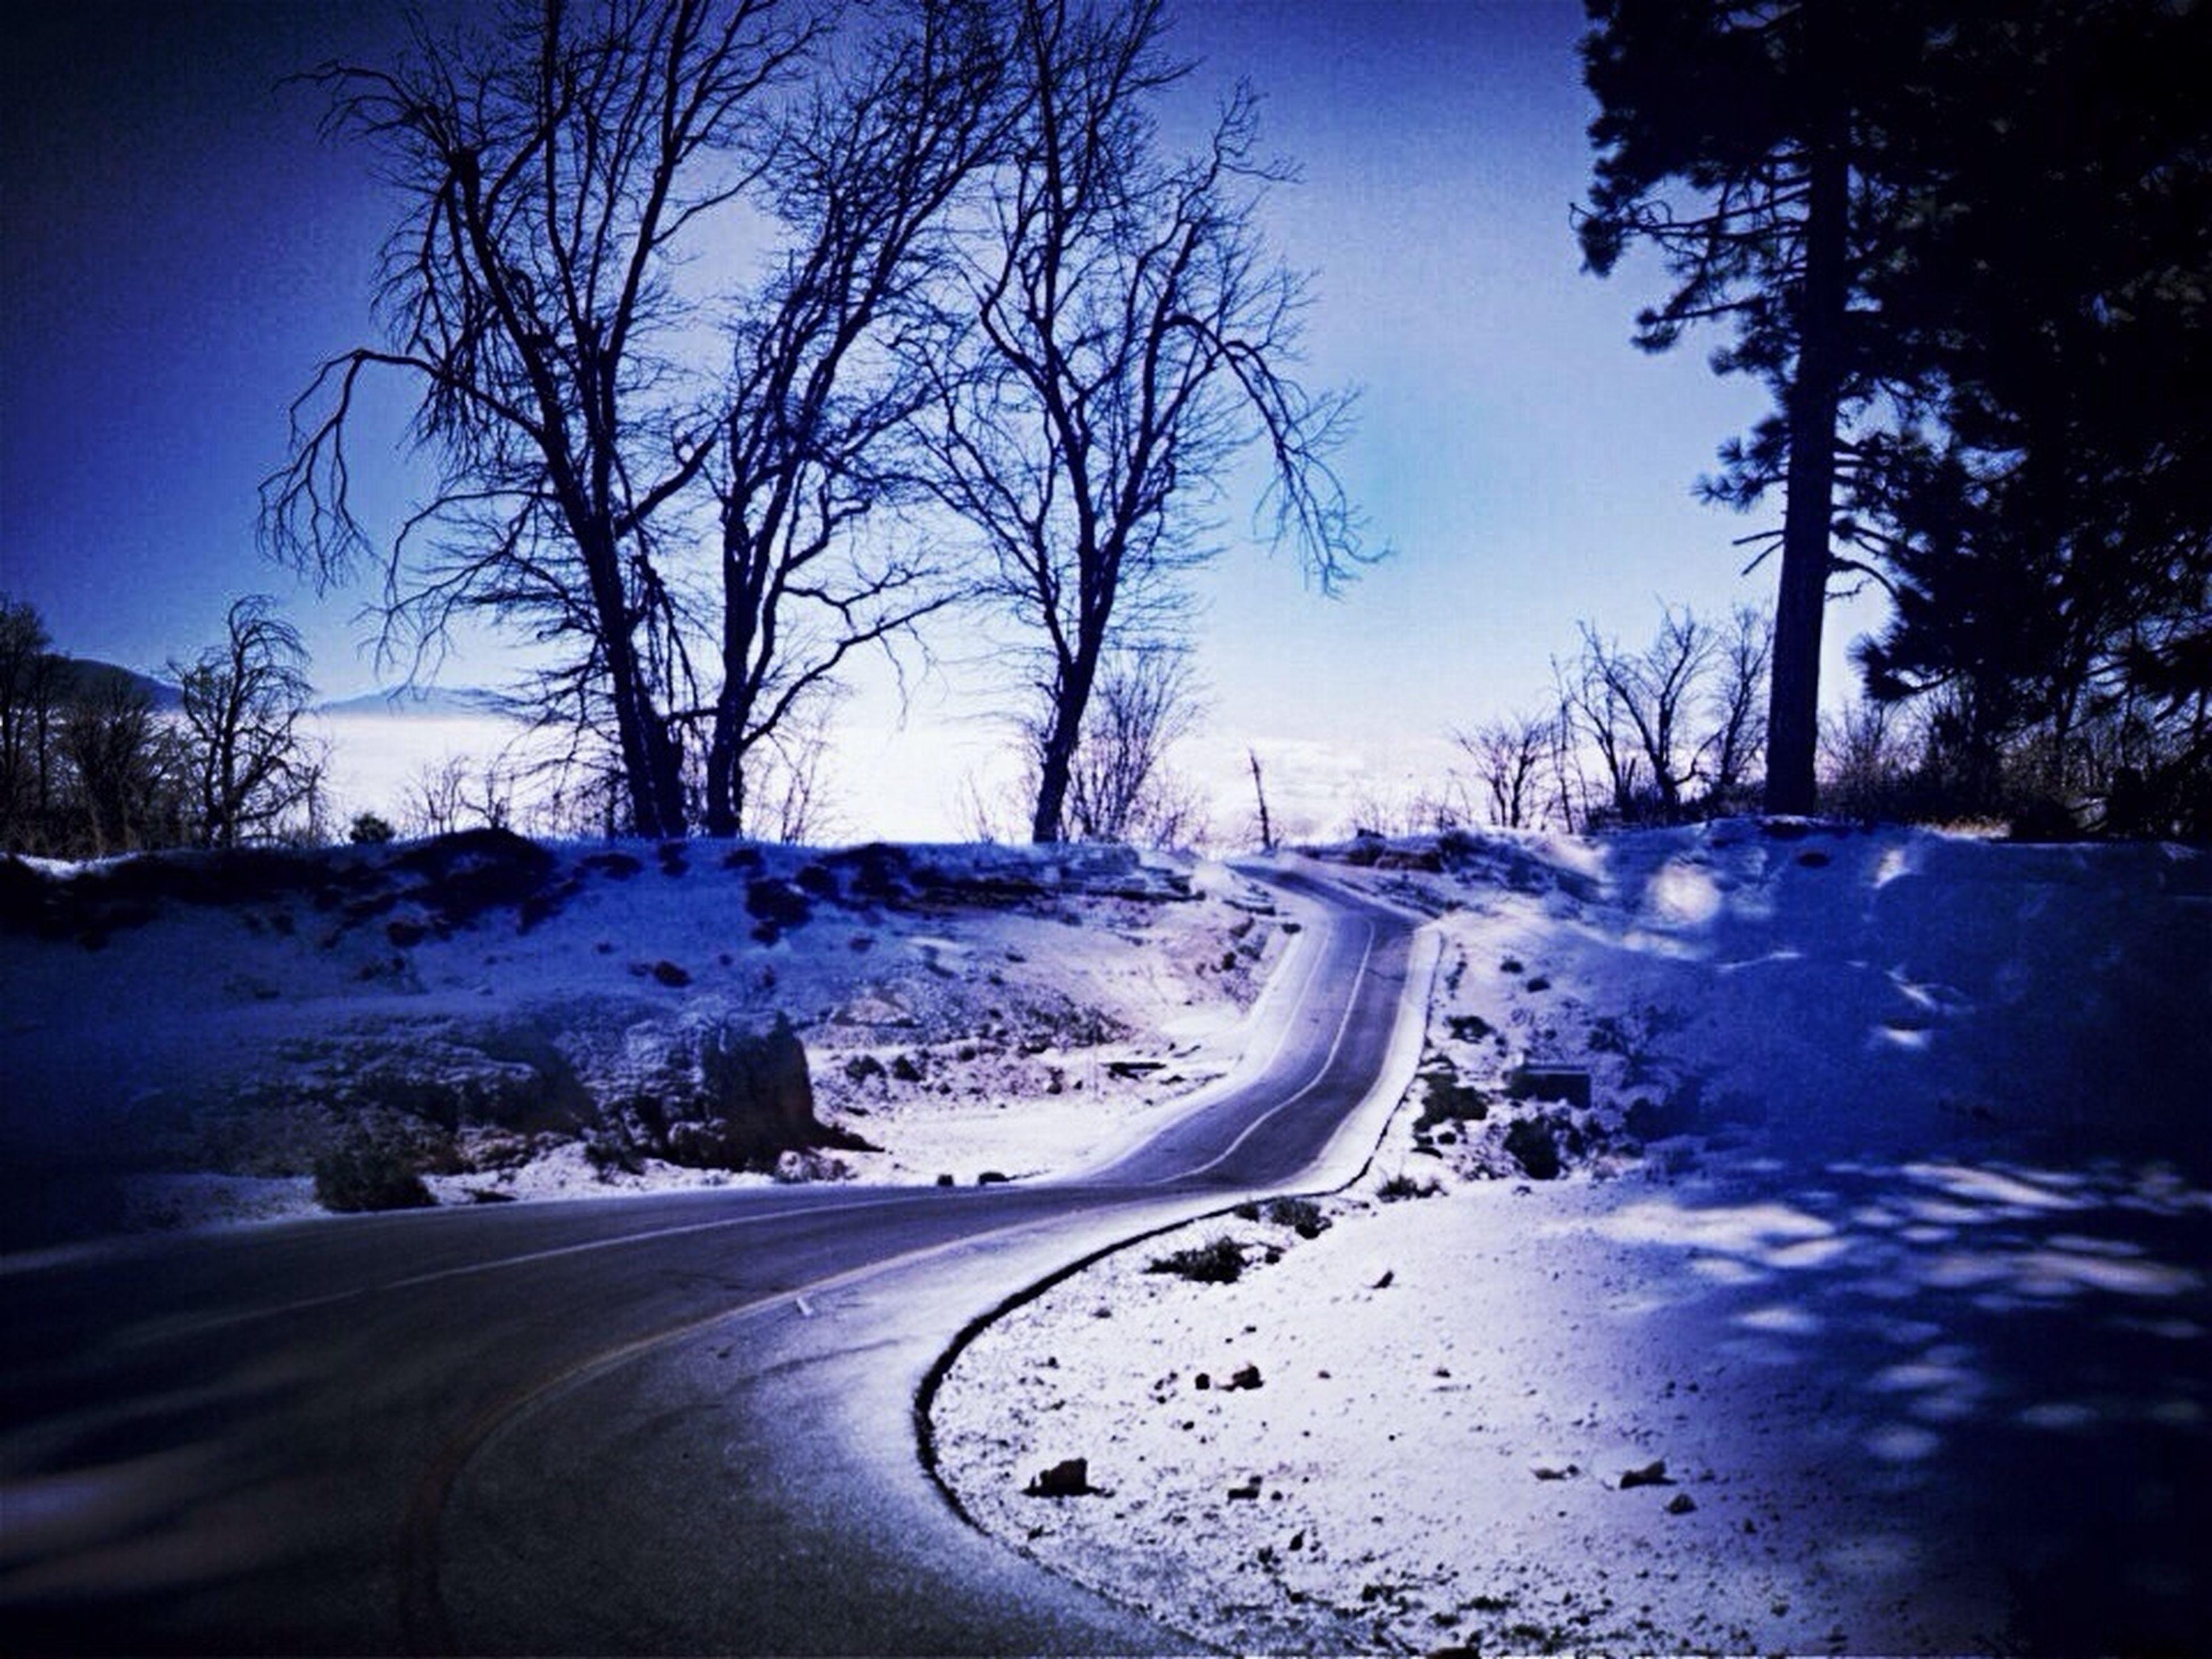 snow, winter, transportation, cold temperature, road, bare tree, the way forward, season, clear sky, tree, diminishing perspective, car, street, nature, weather, covering, vanishing point, country road, sky, landscape